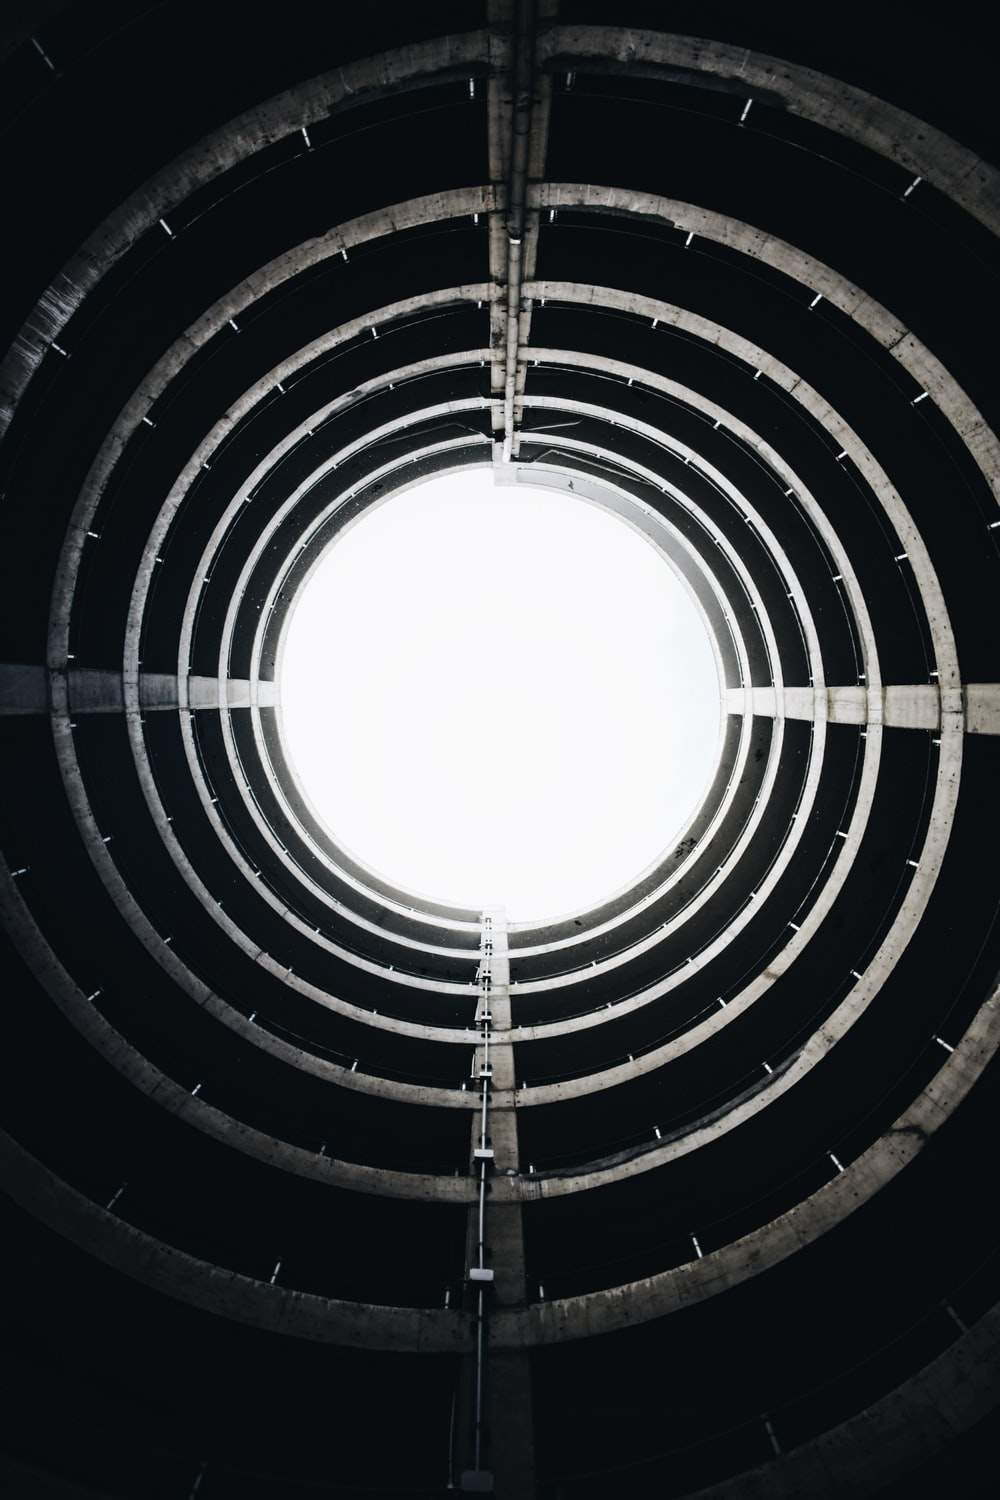 low angle photography of round gray concrete building interior